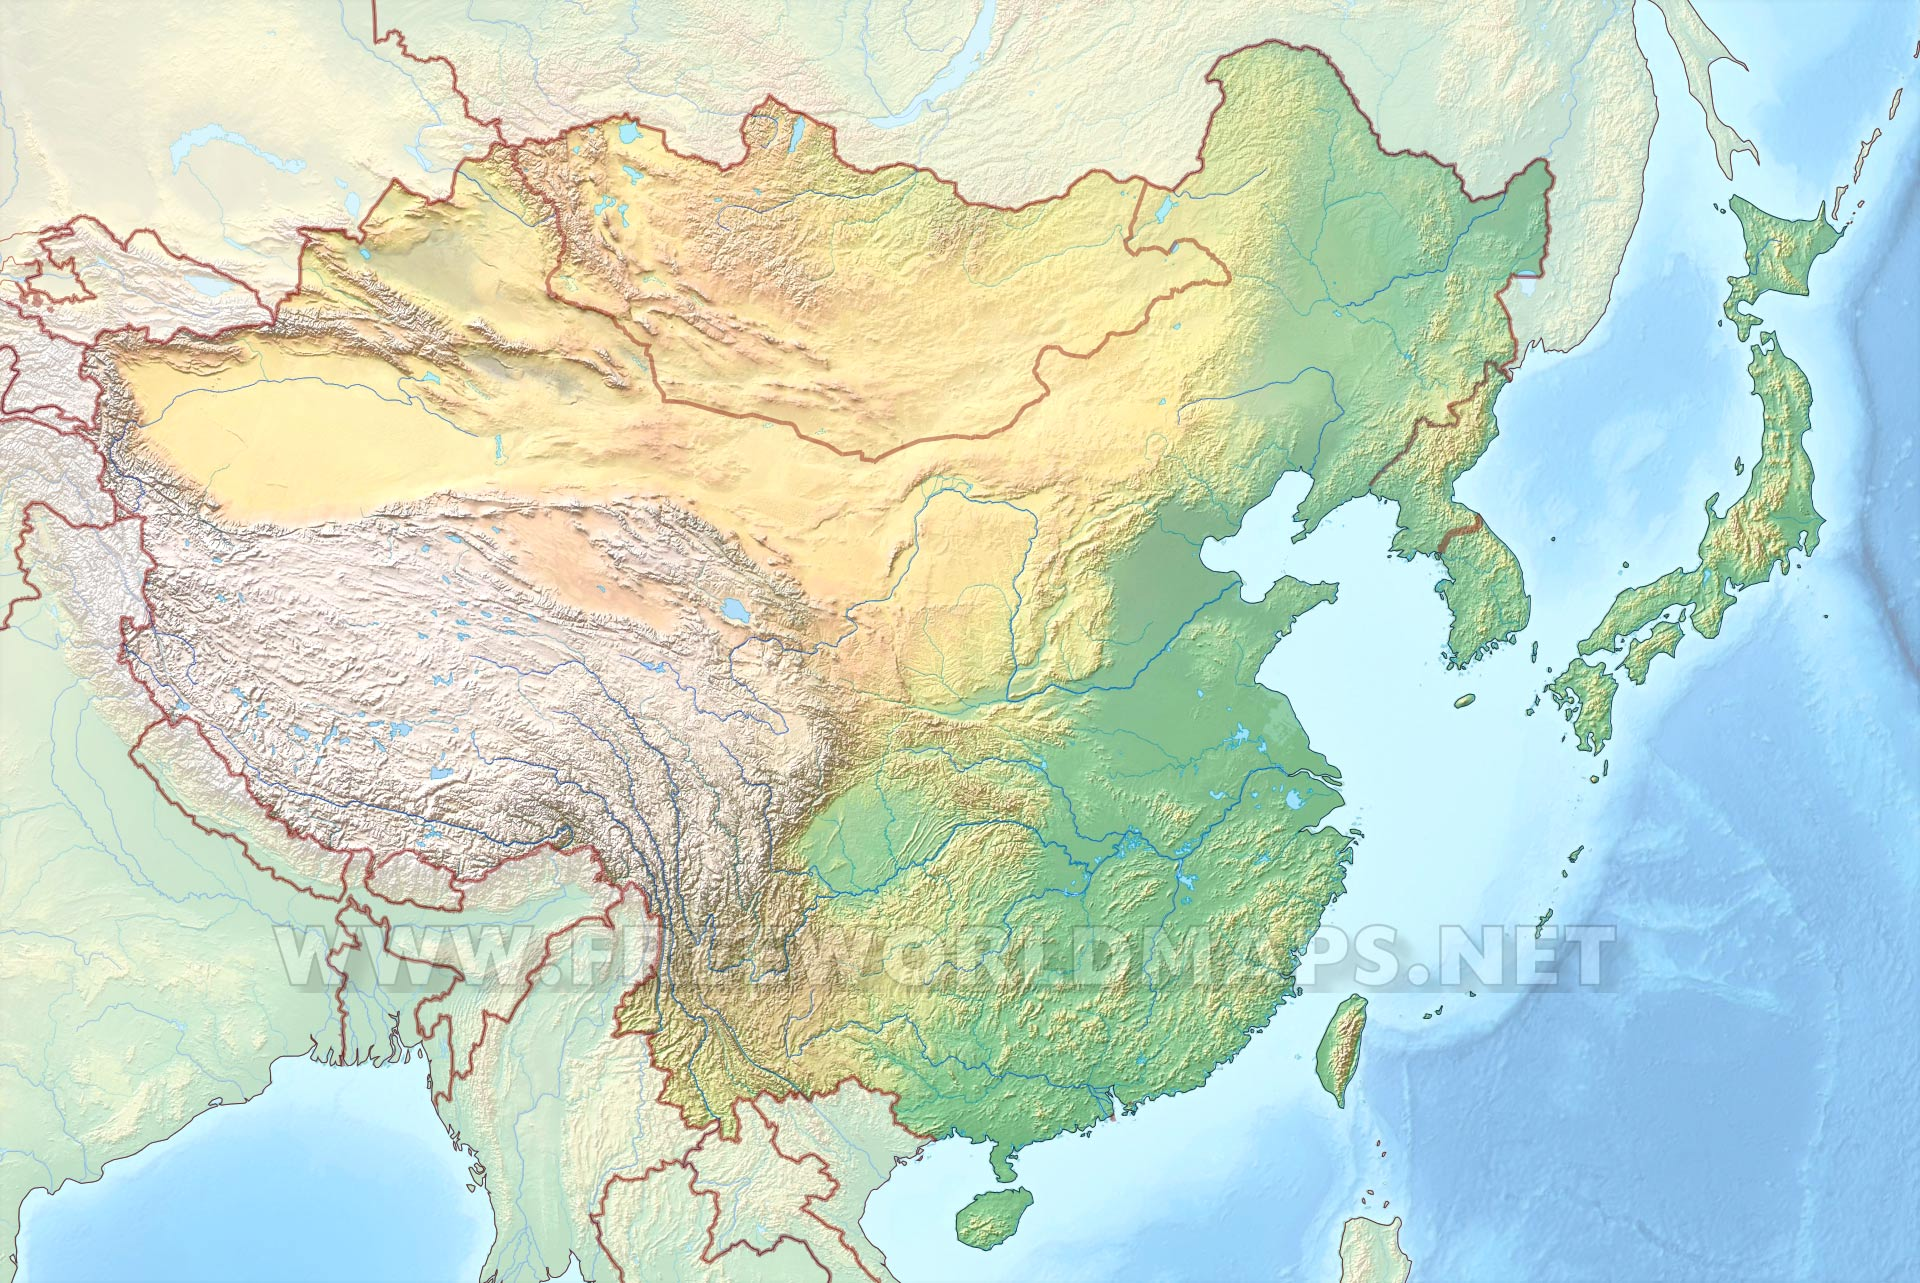 World Map Asia Hd.  East Asia HD map Physical Map